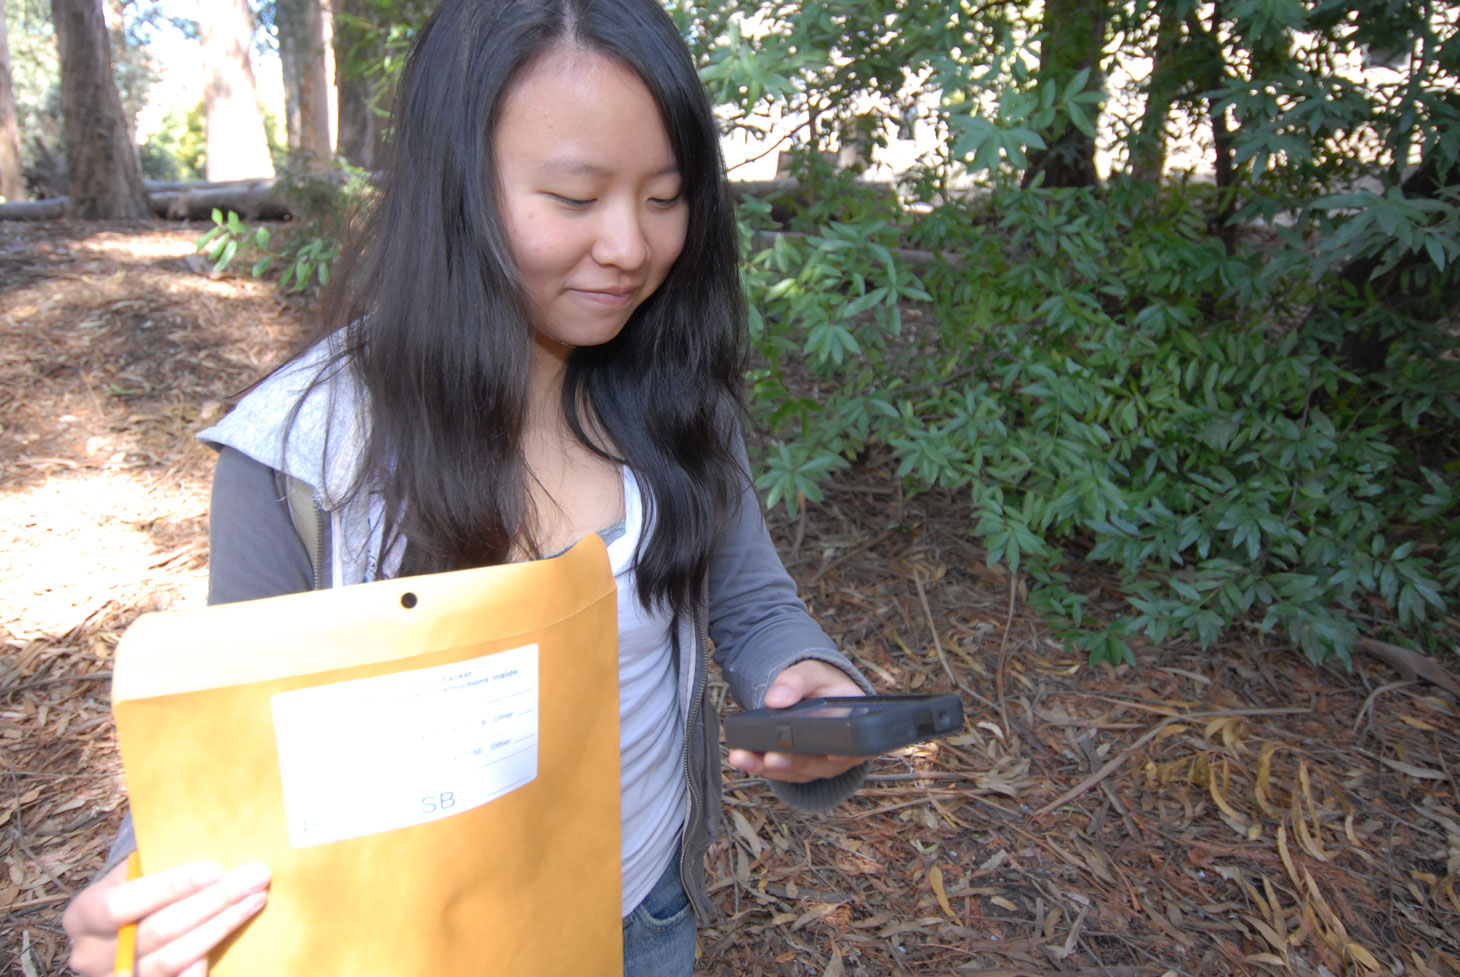 Woman holds a smartphone while conducting tree survey in forested area